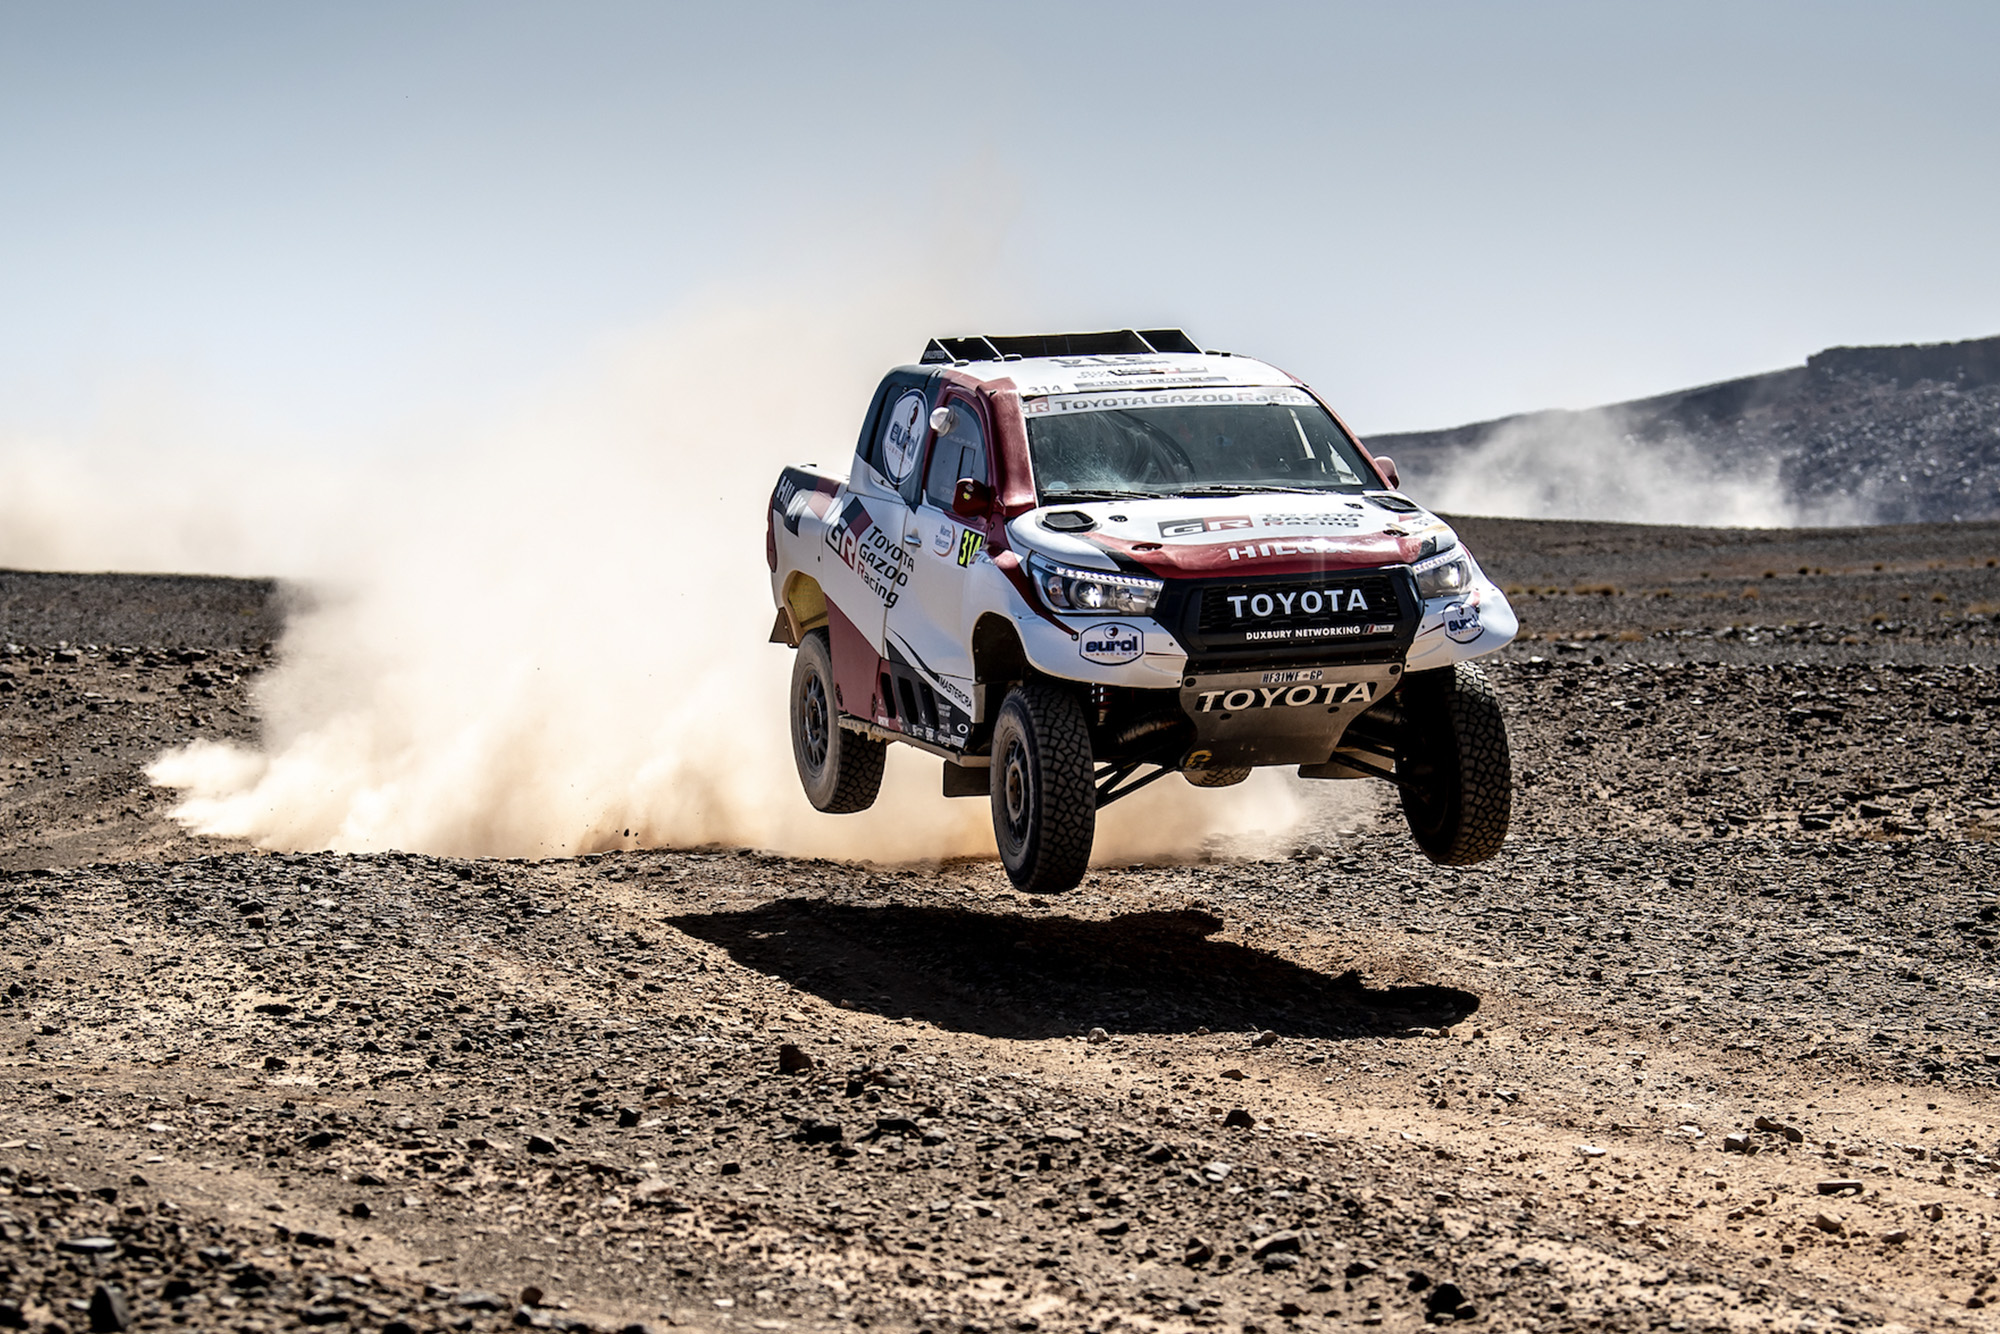 Fernando Alonso's Dakar-spec Toyota Hilix jumping over a rally raid course